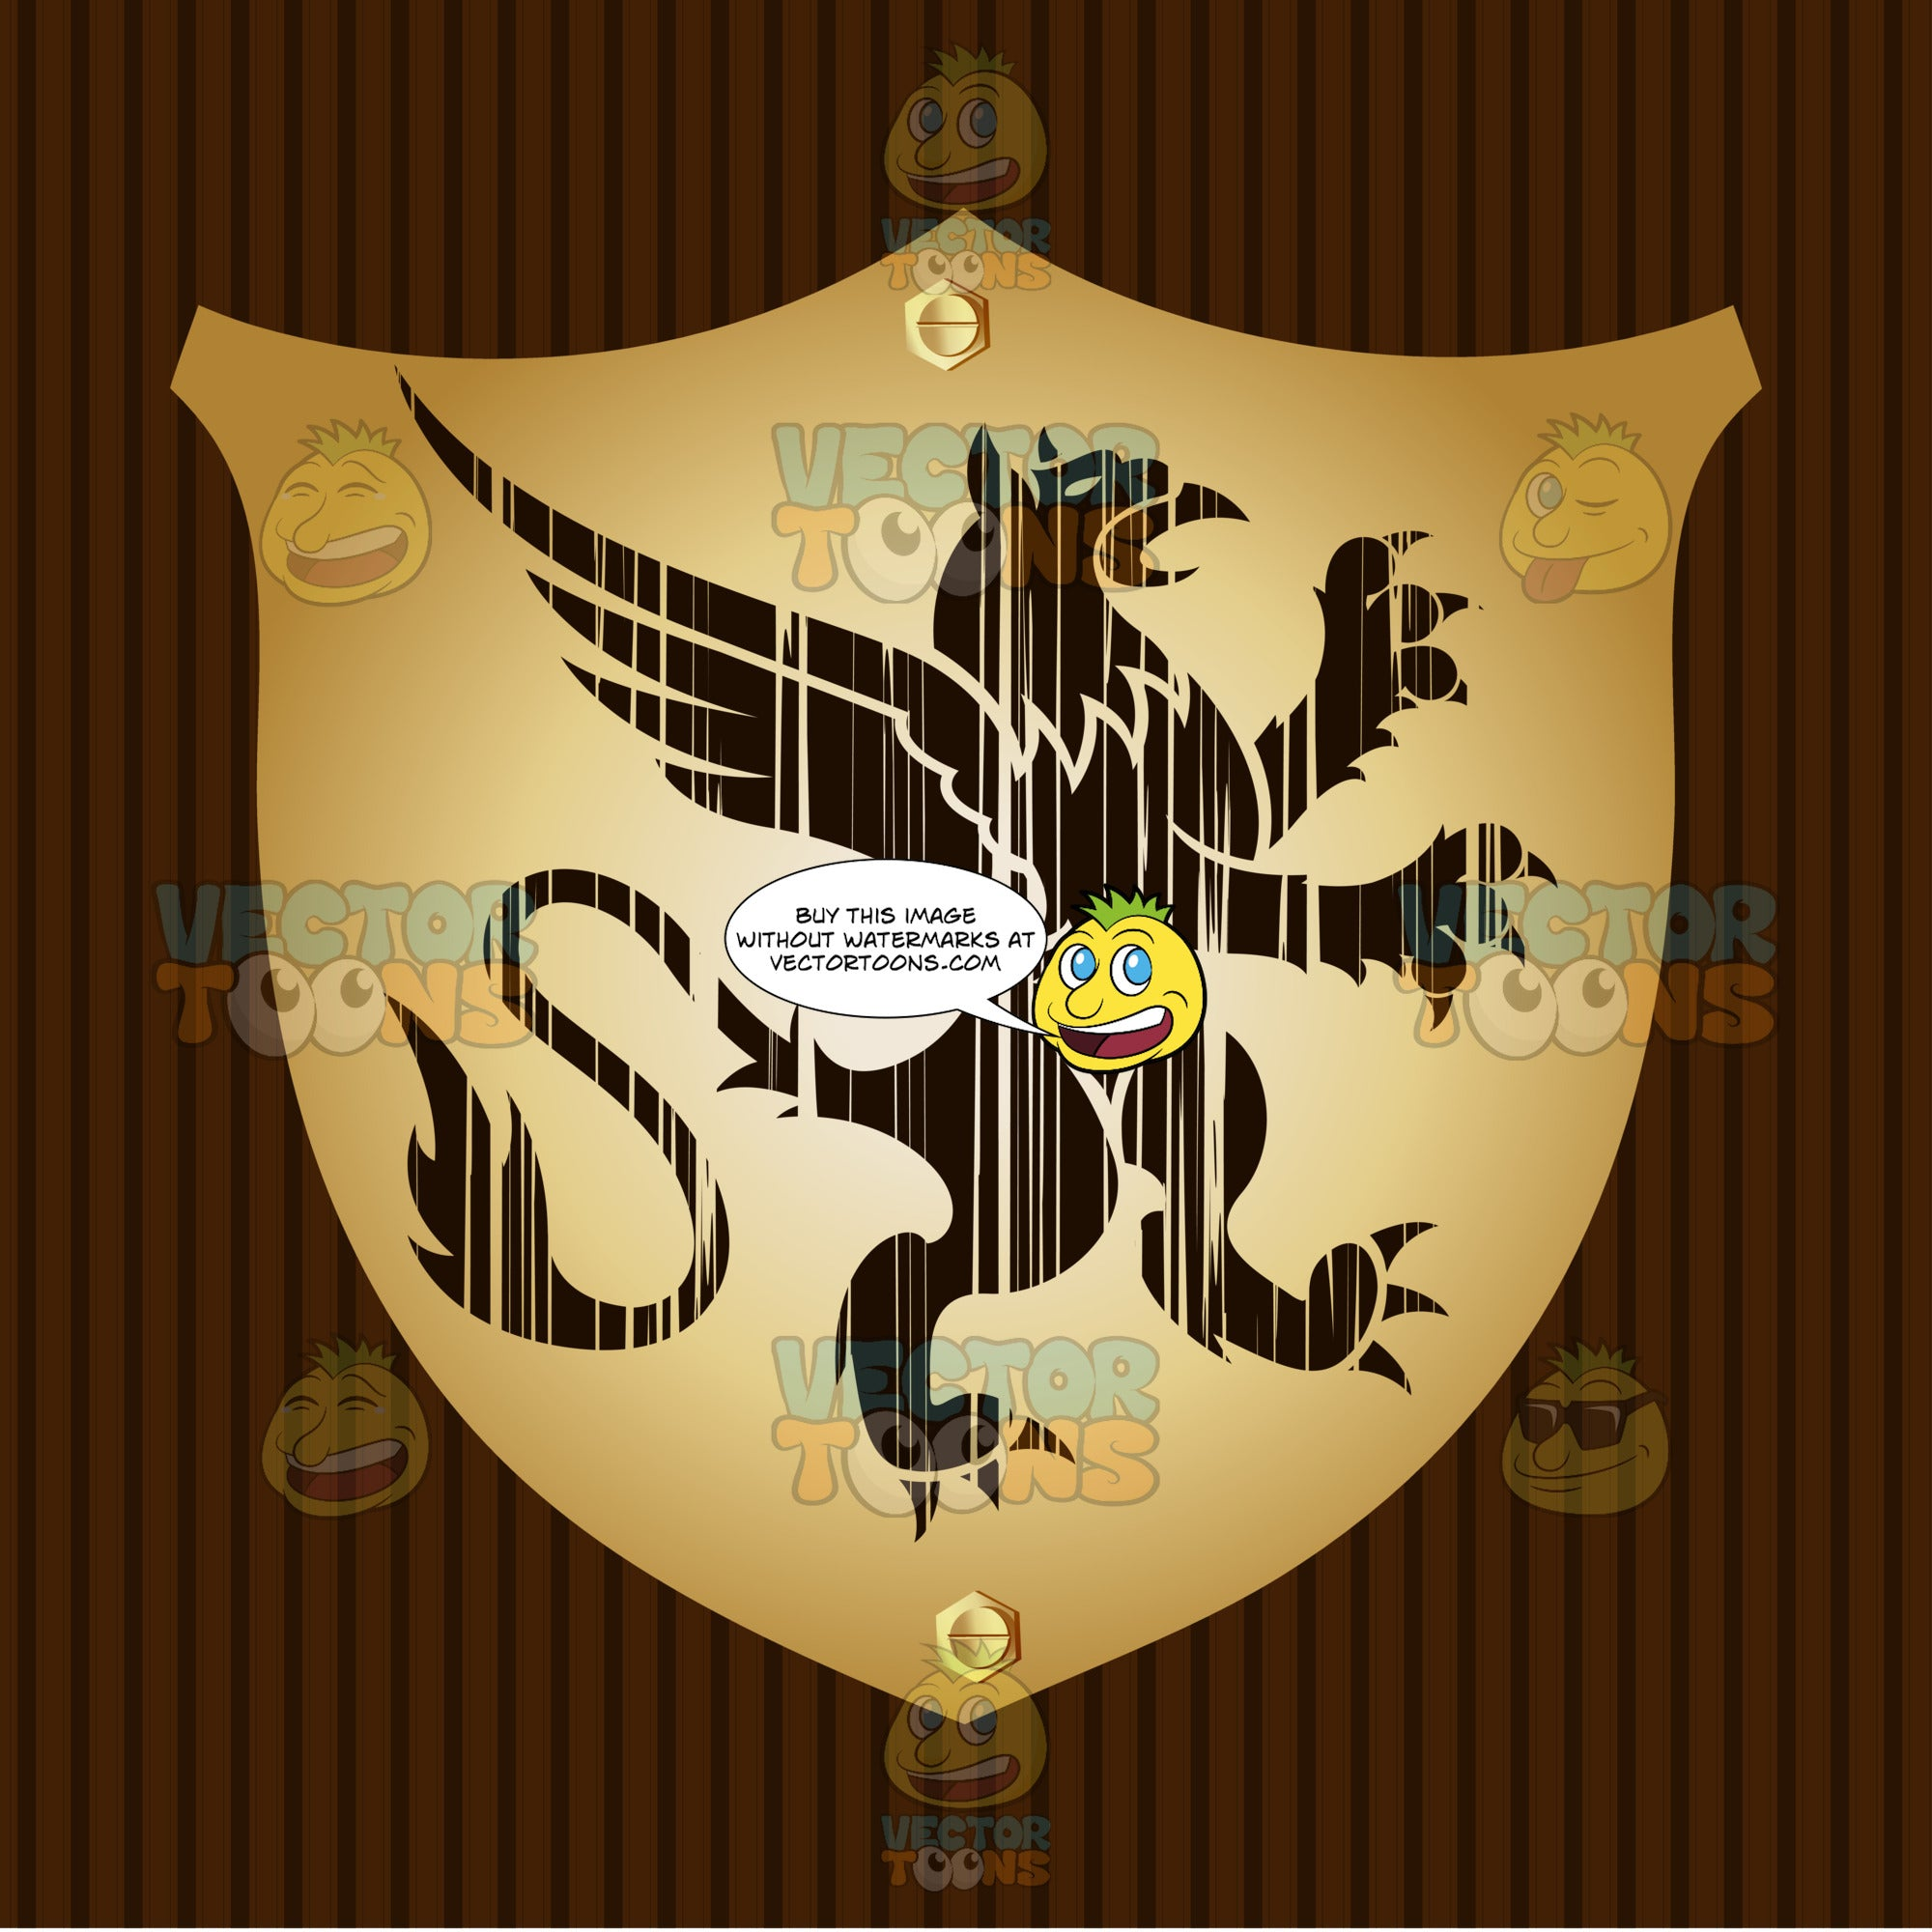 Rearing Gryphon Coat Of Arms On Gold Plate Screwed On Wooden Brown Background